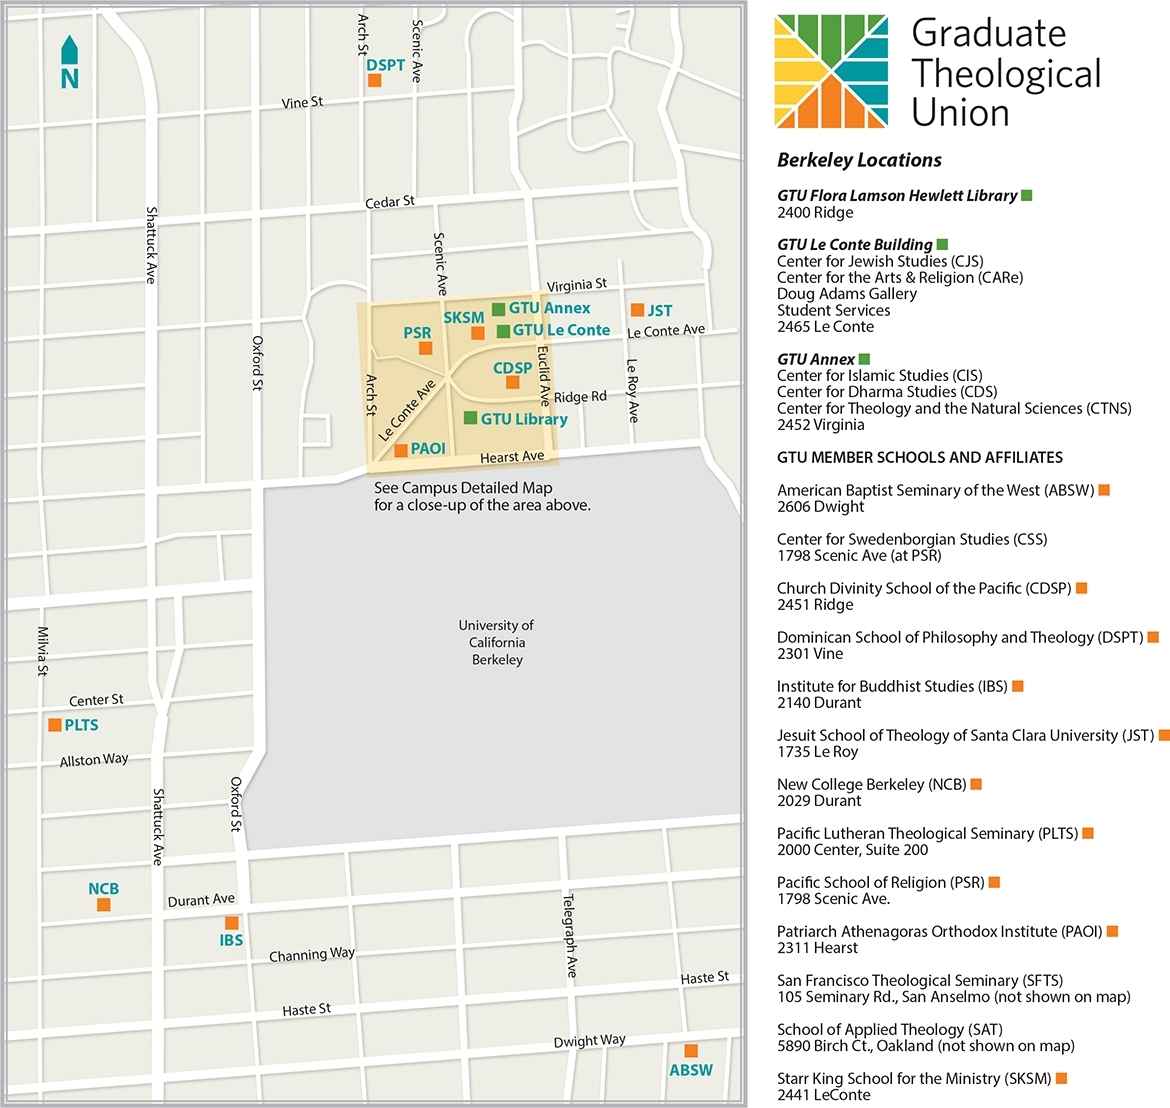 Maps - Berkeley Overview Map | Graduate Theological Union regarding Berkeley Academic Calender 2019-2020